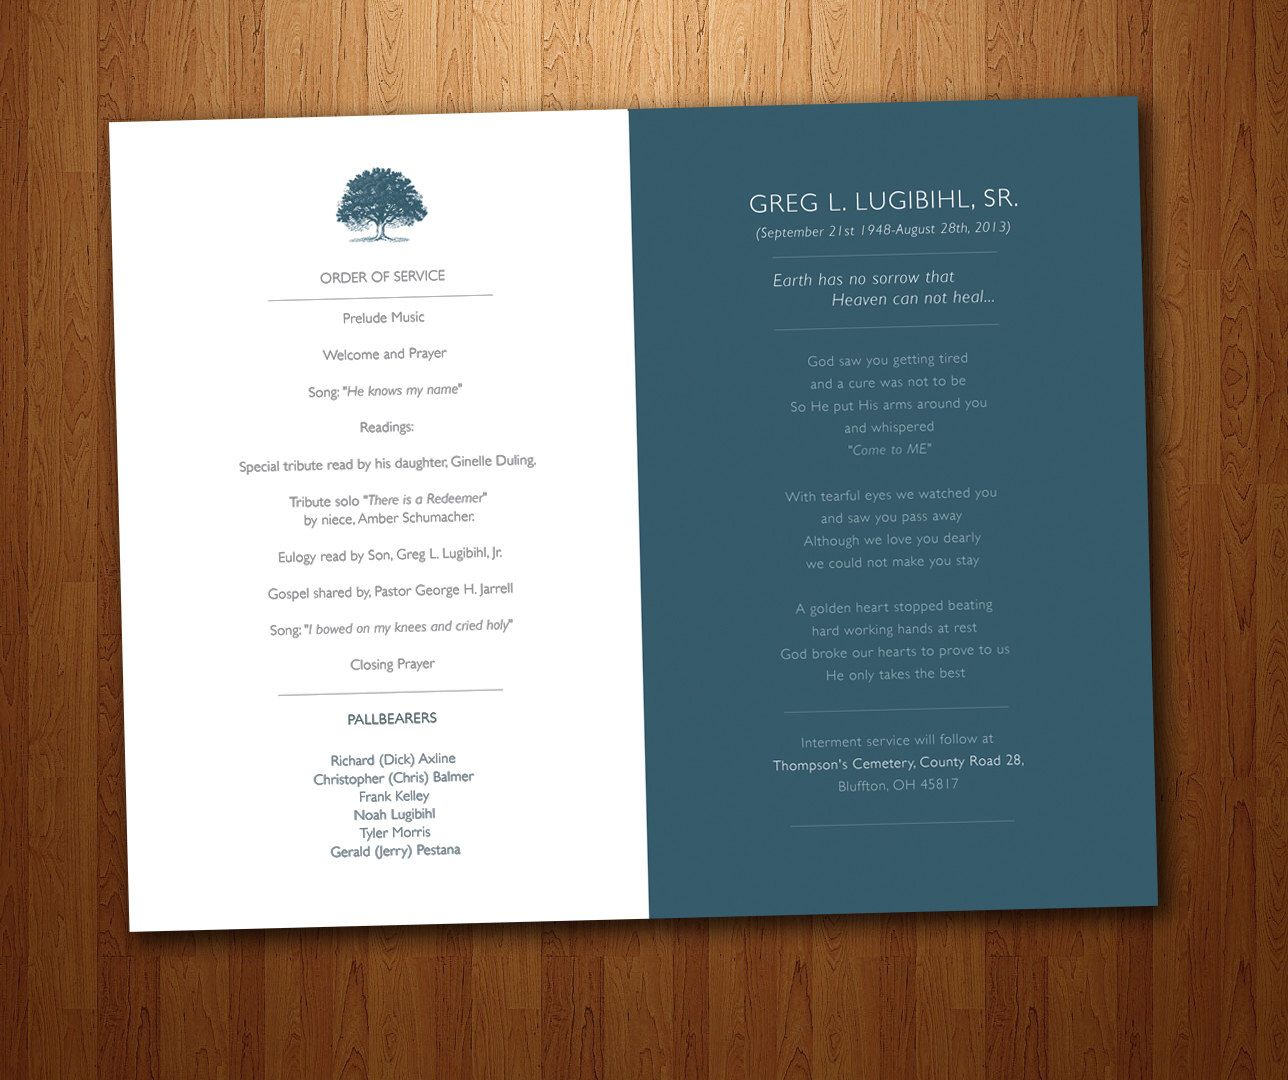 Funeral Program For Memorial Order Of Service Pdf Printable By Huntersplace On Etsy Https